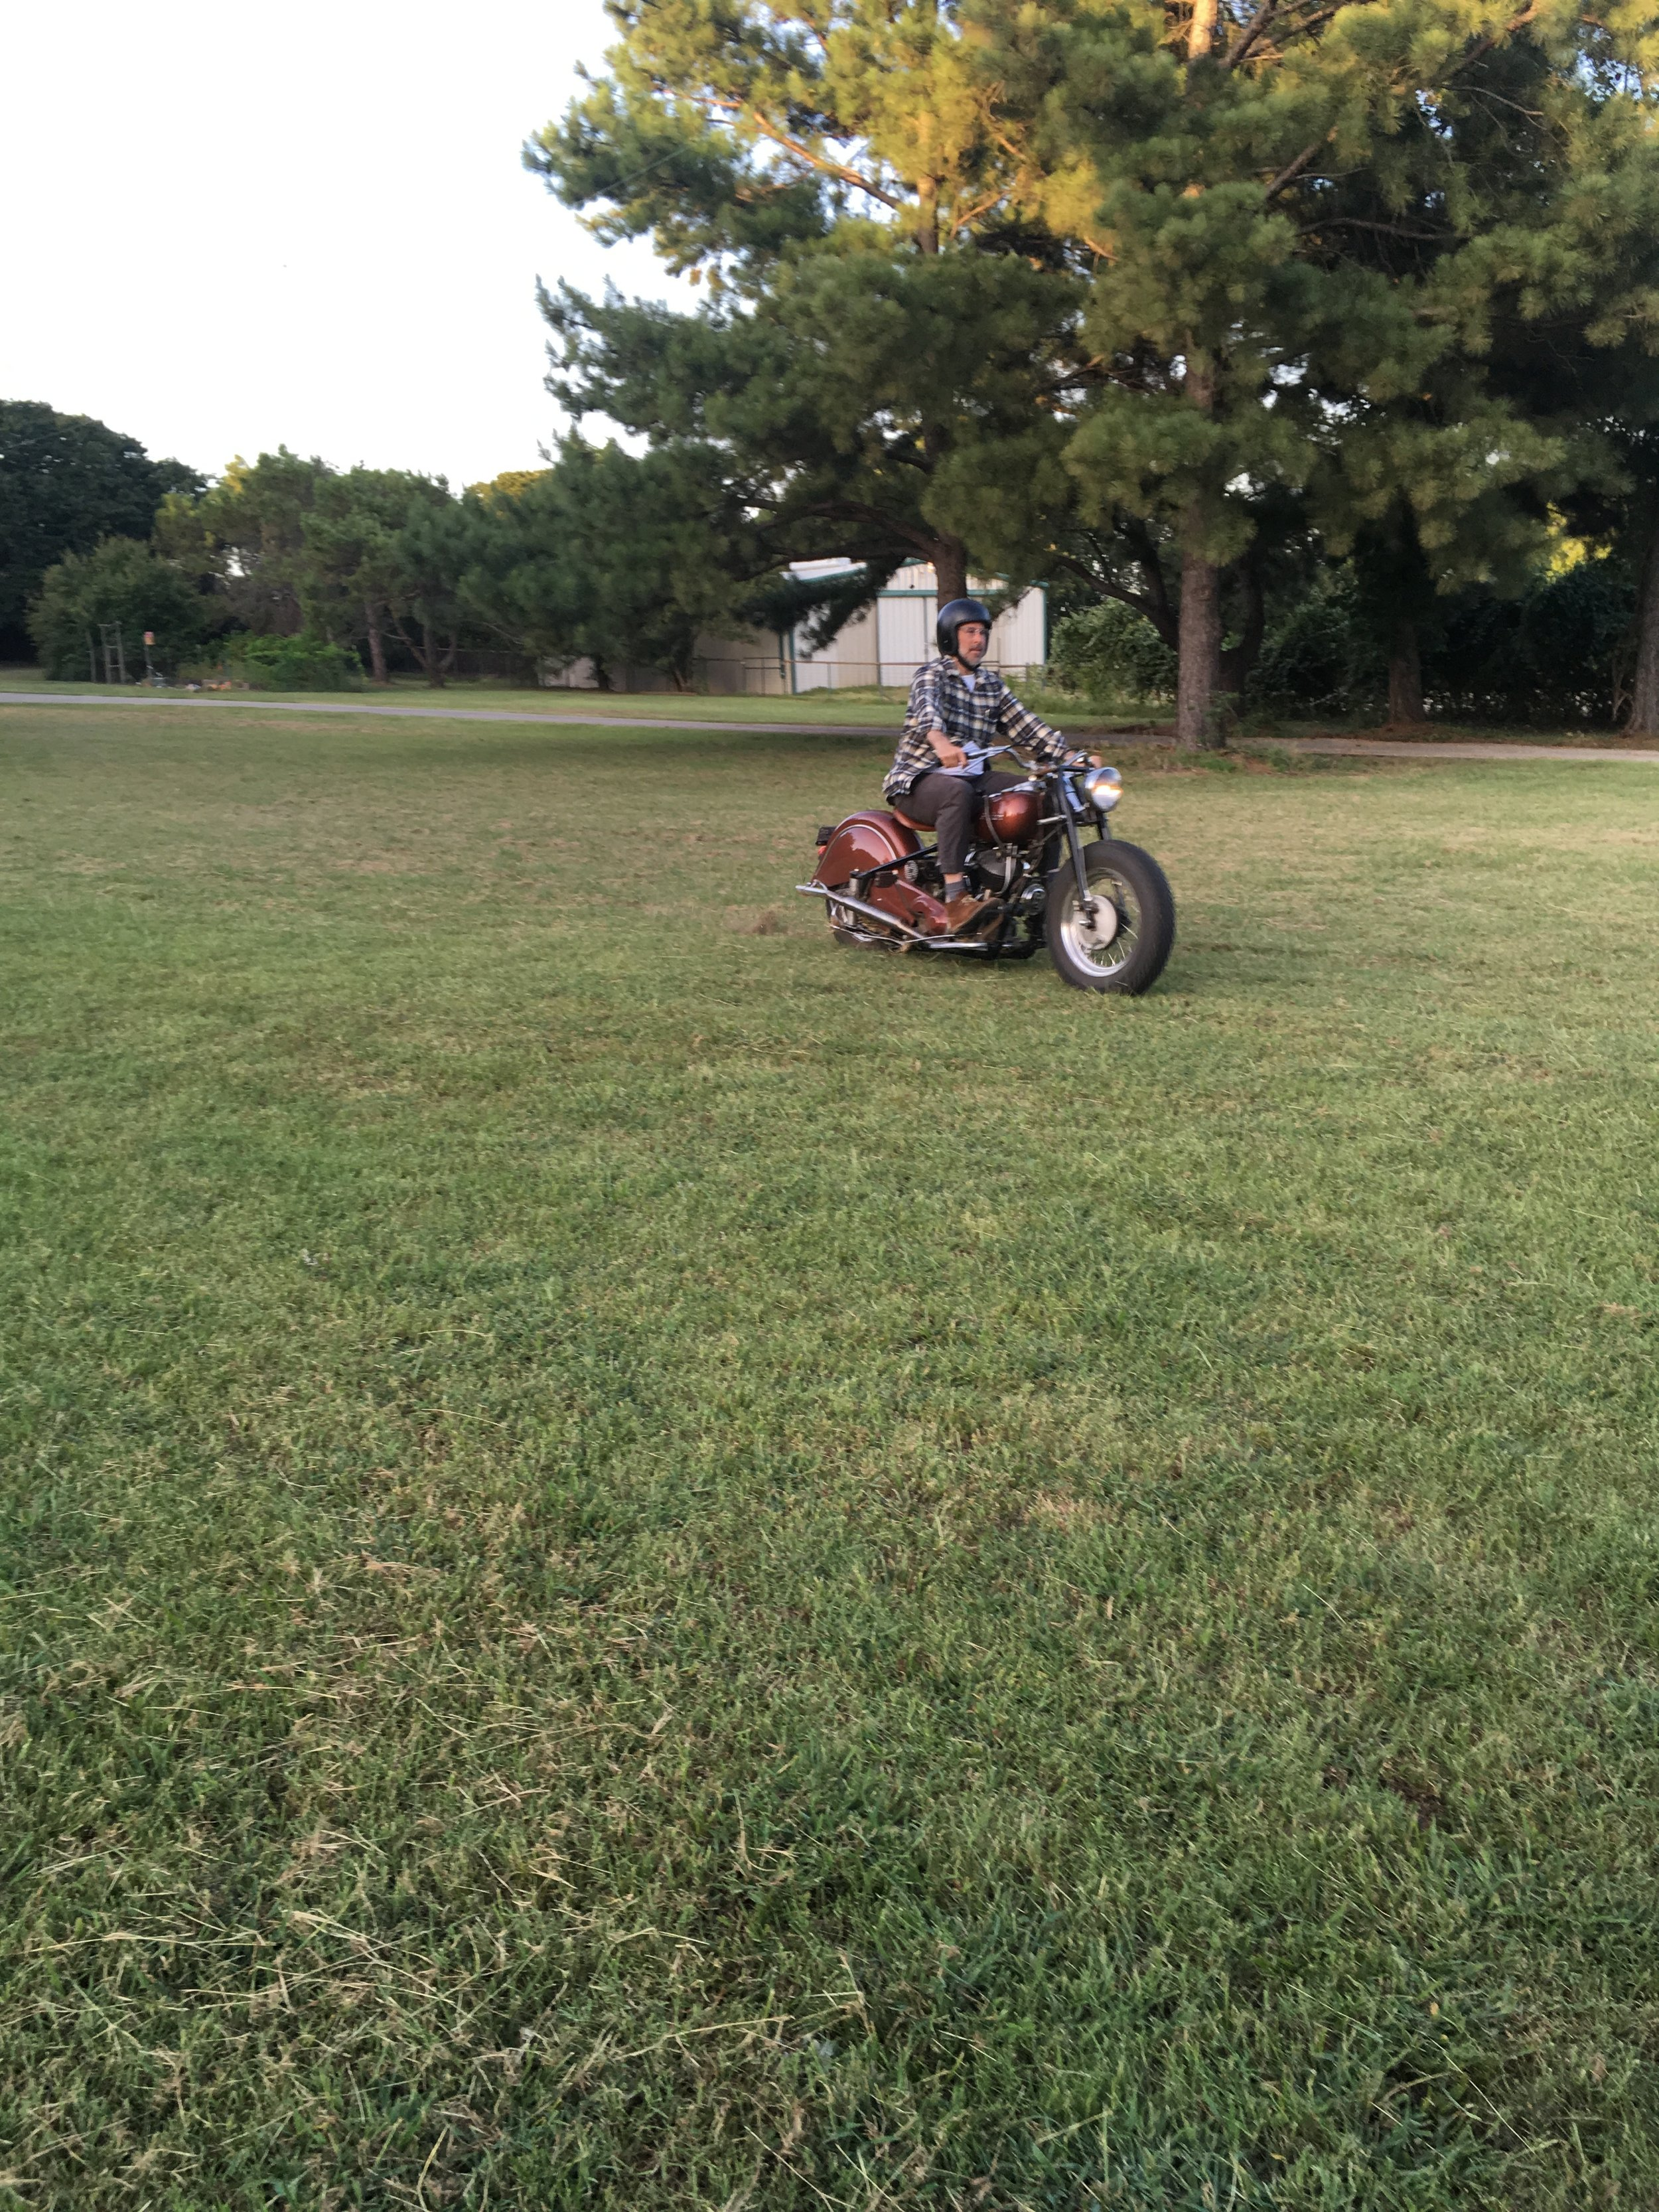 Jason giving the '48 some hot laps on the grass. Even with knobbies, grass can be a little unpredictable.